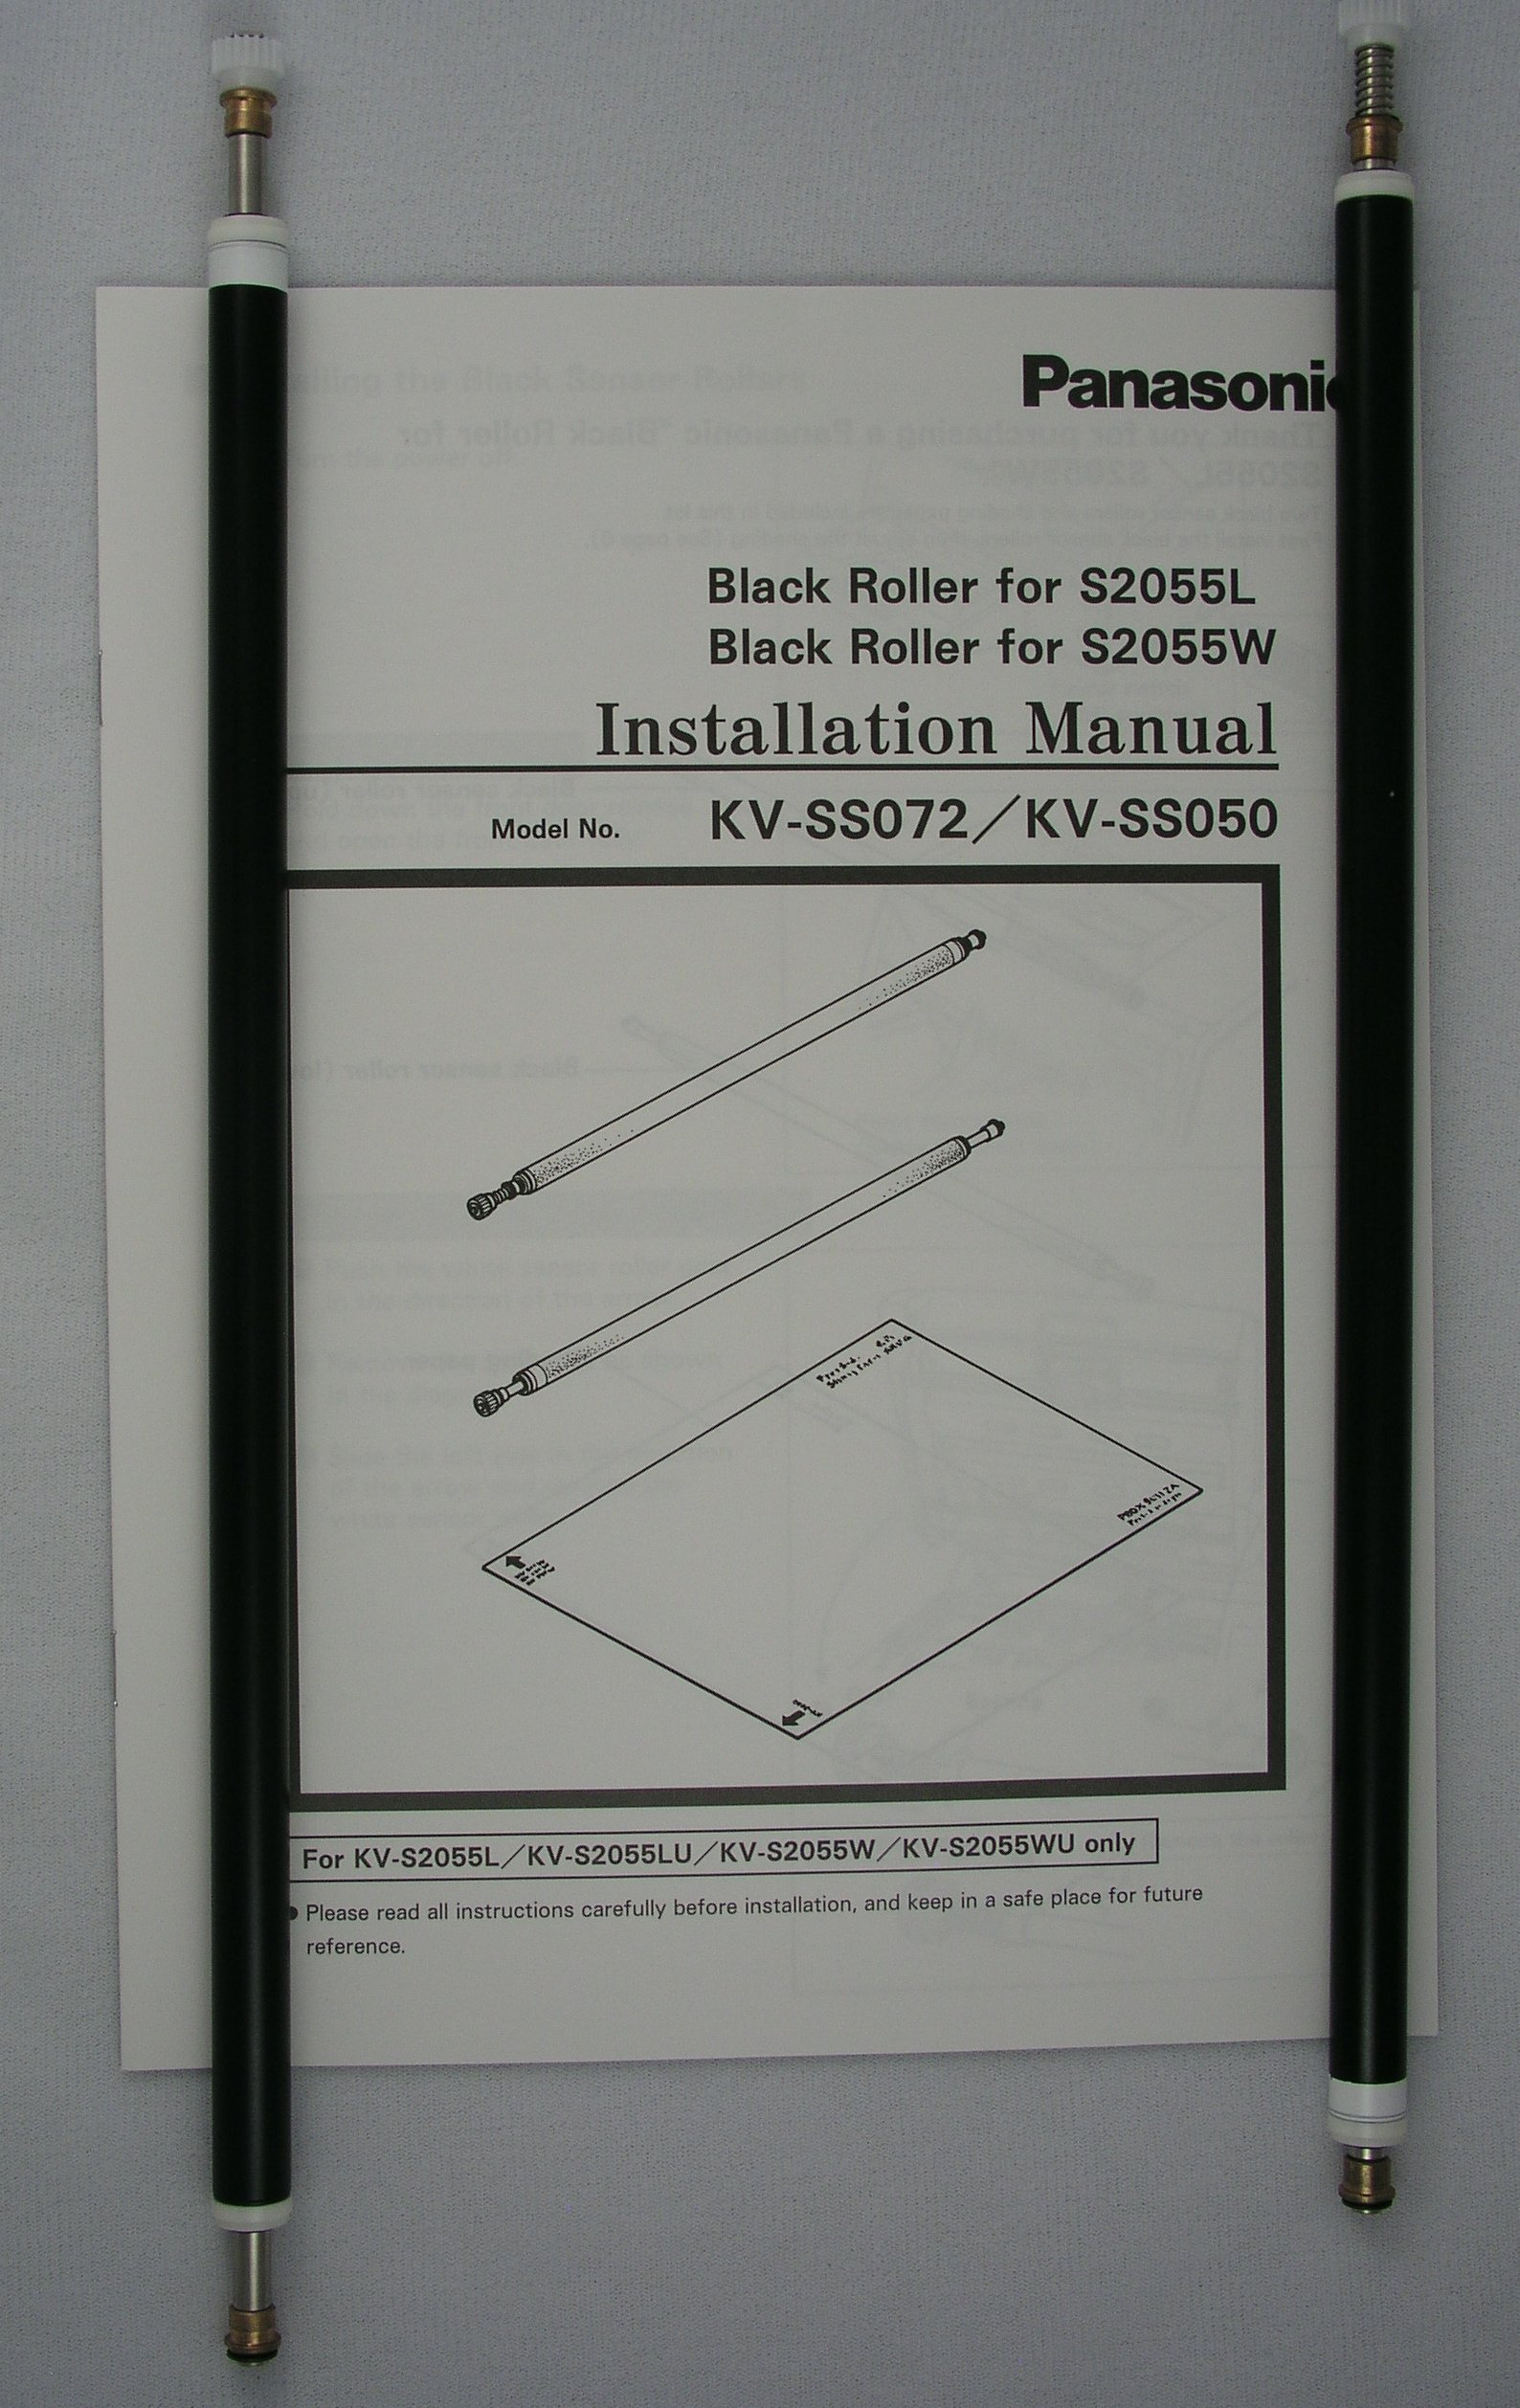 Panasonic Black Reference Roller Kit for KV-S2055/65W